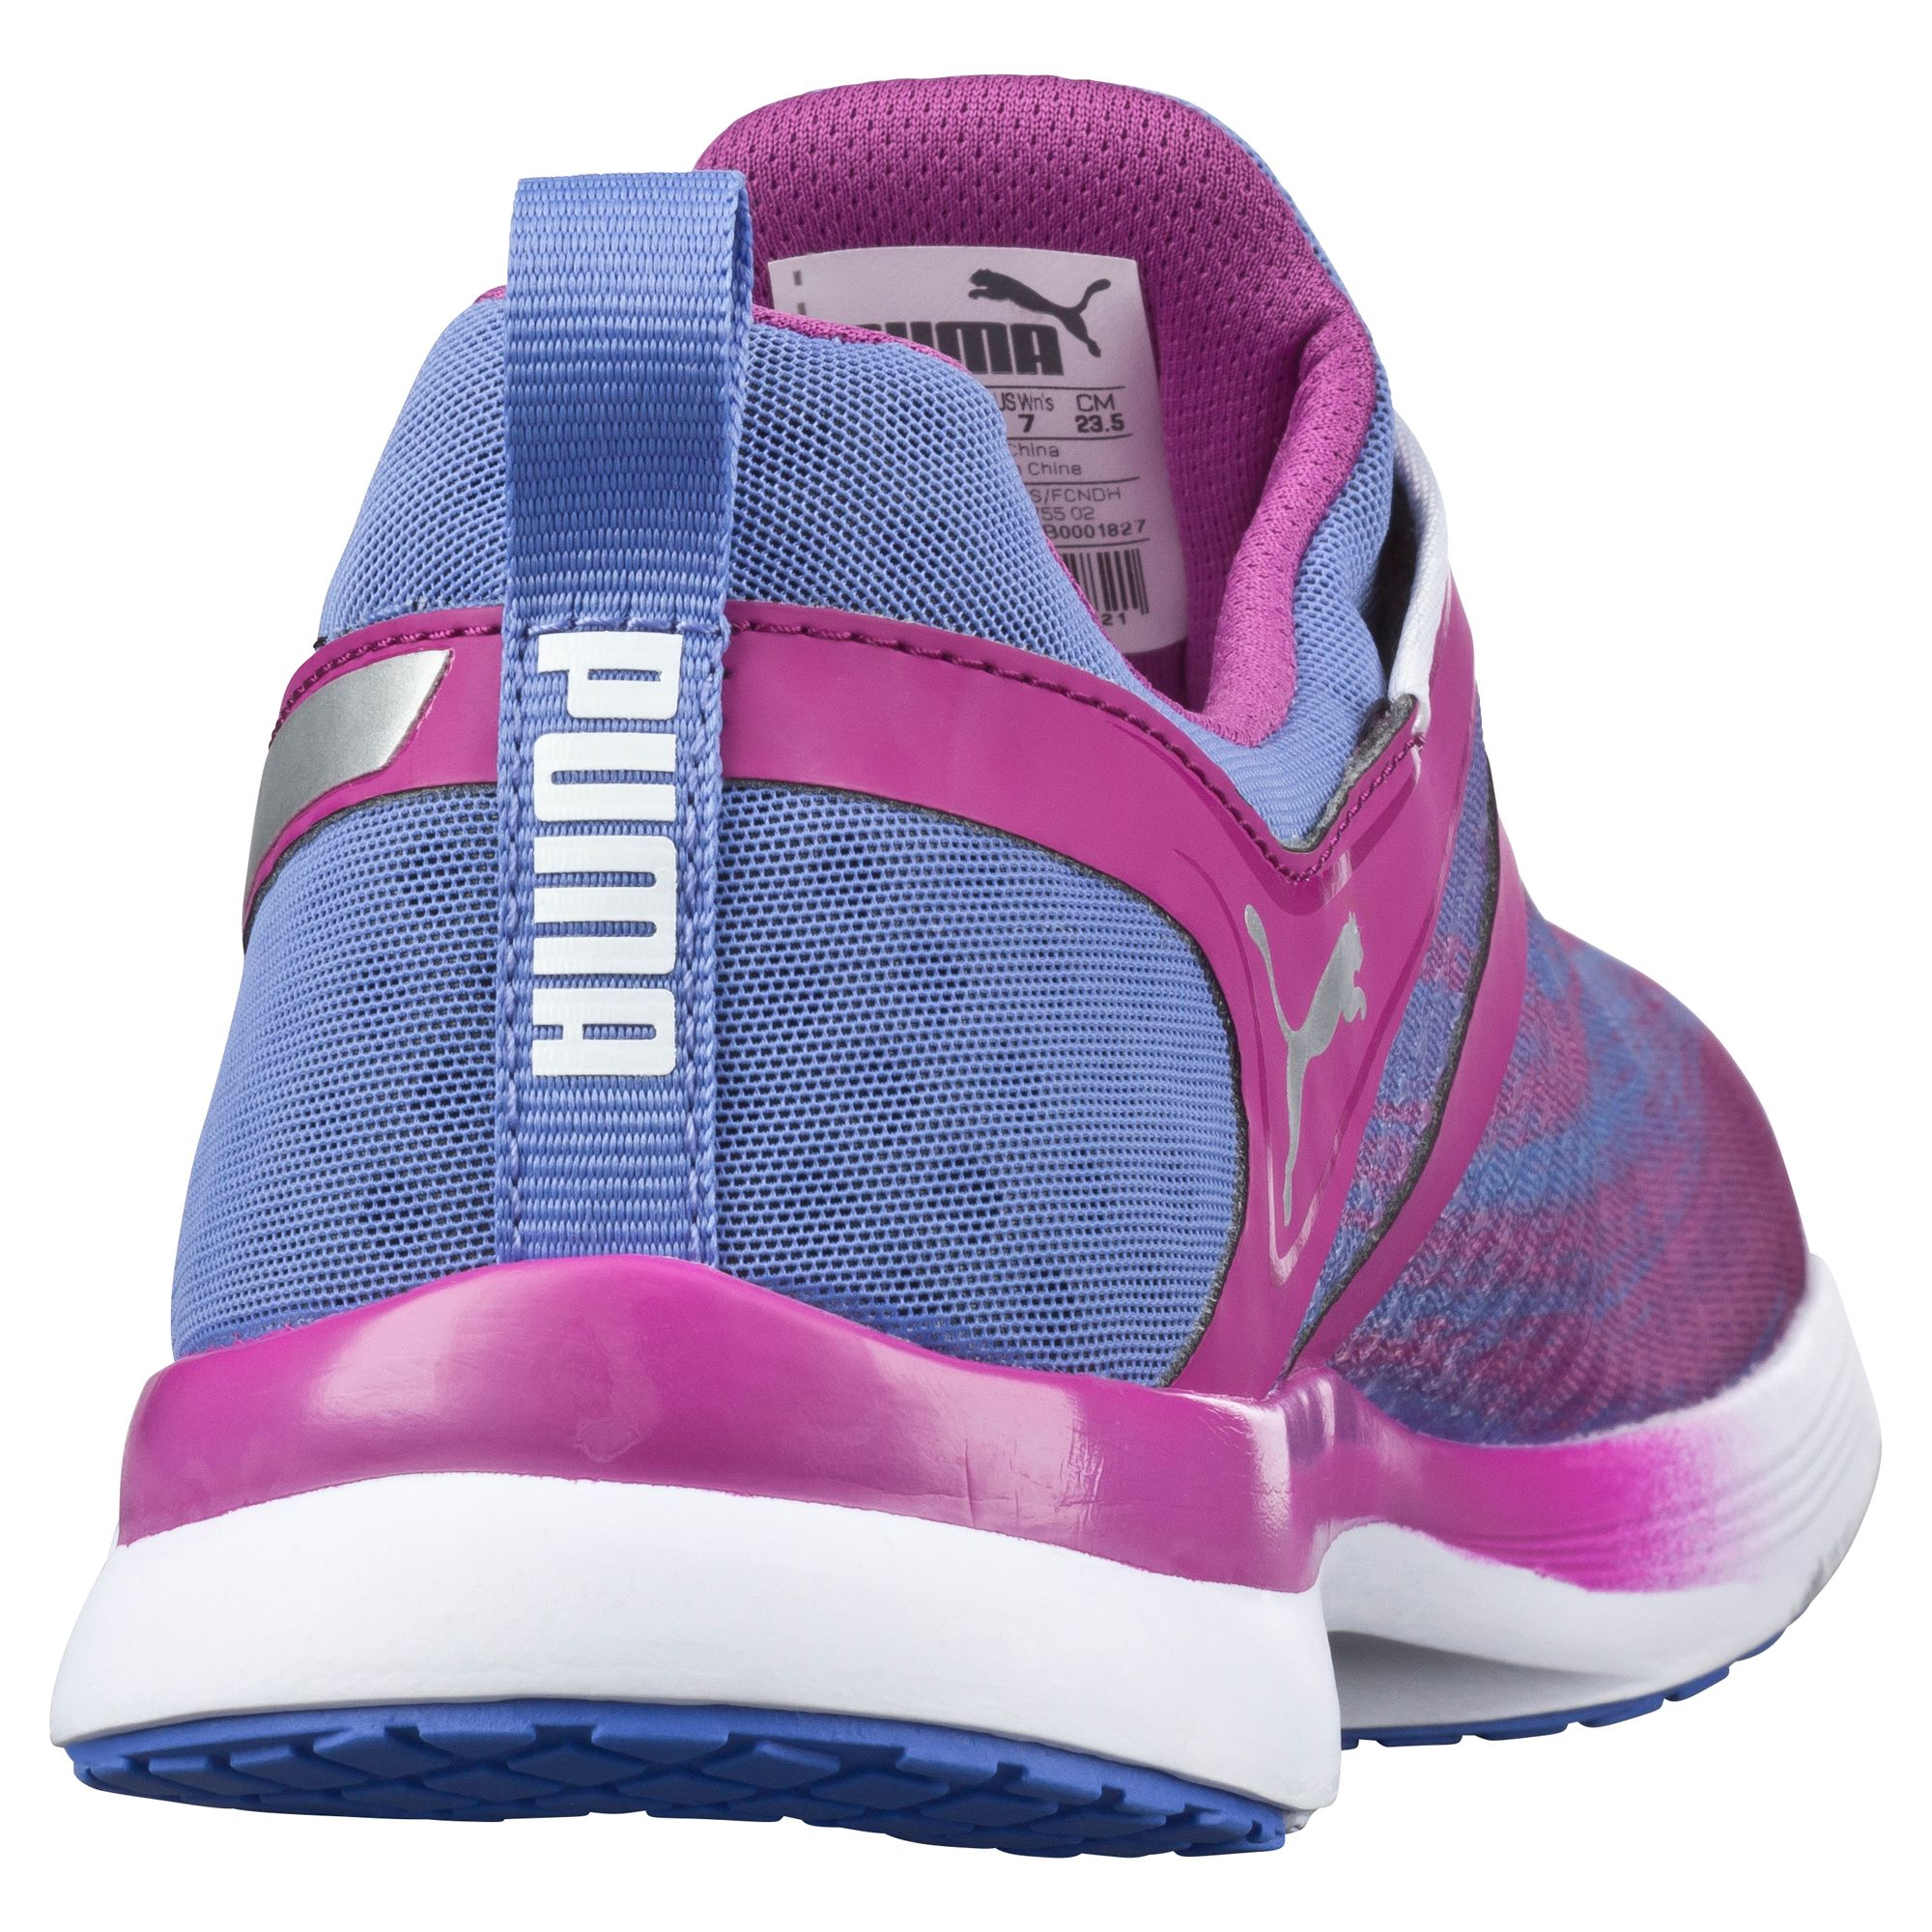 puma pulse xt fade damen fitness schuhe schuhe training. Black Bedroom Furniture Sets. Home Design Ideas